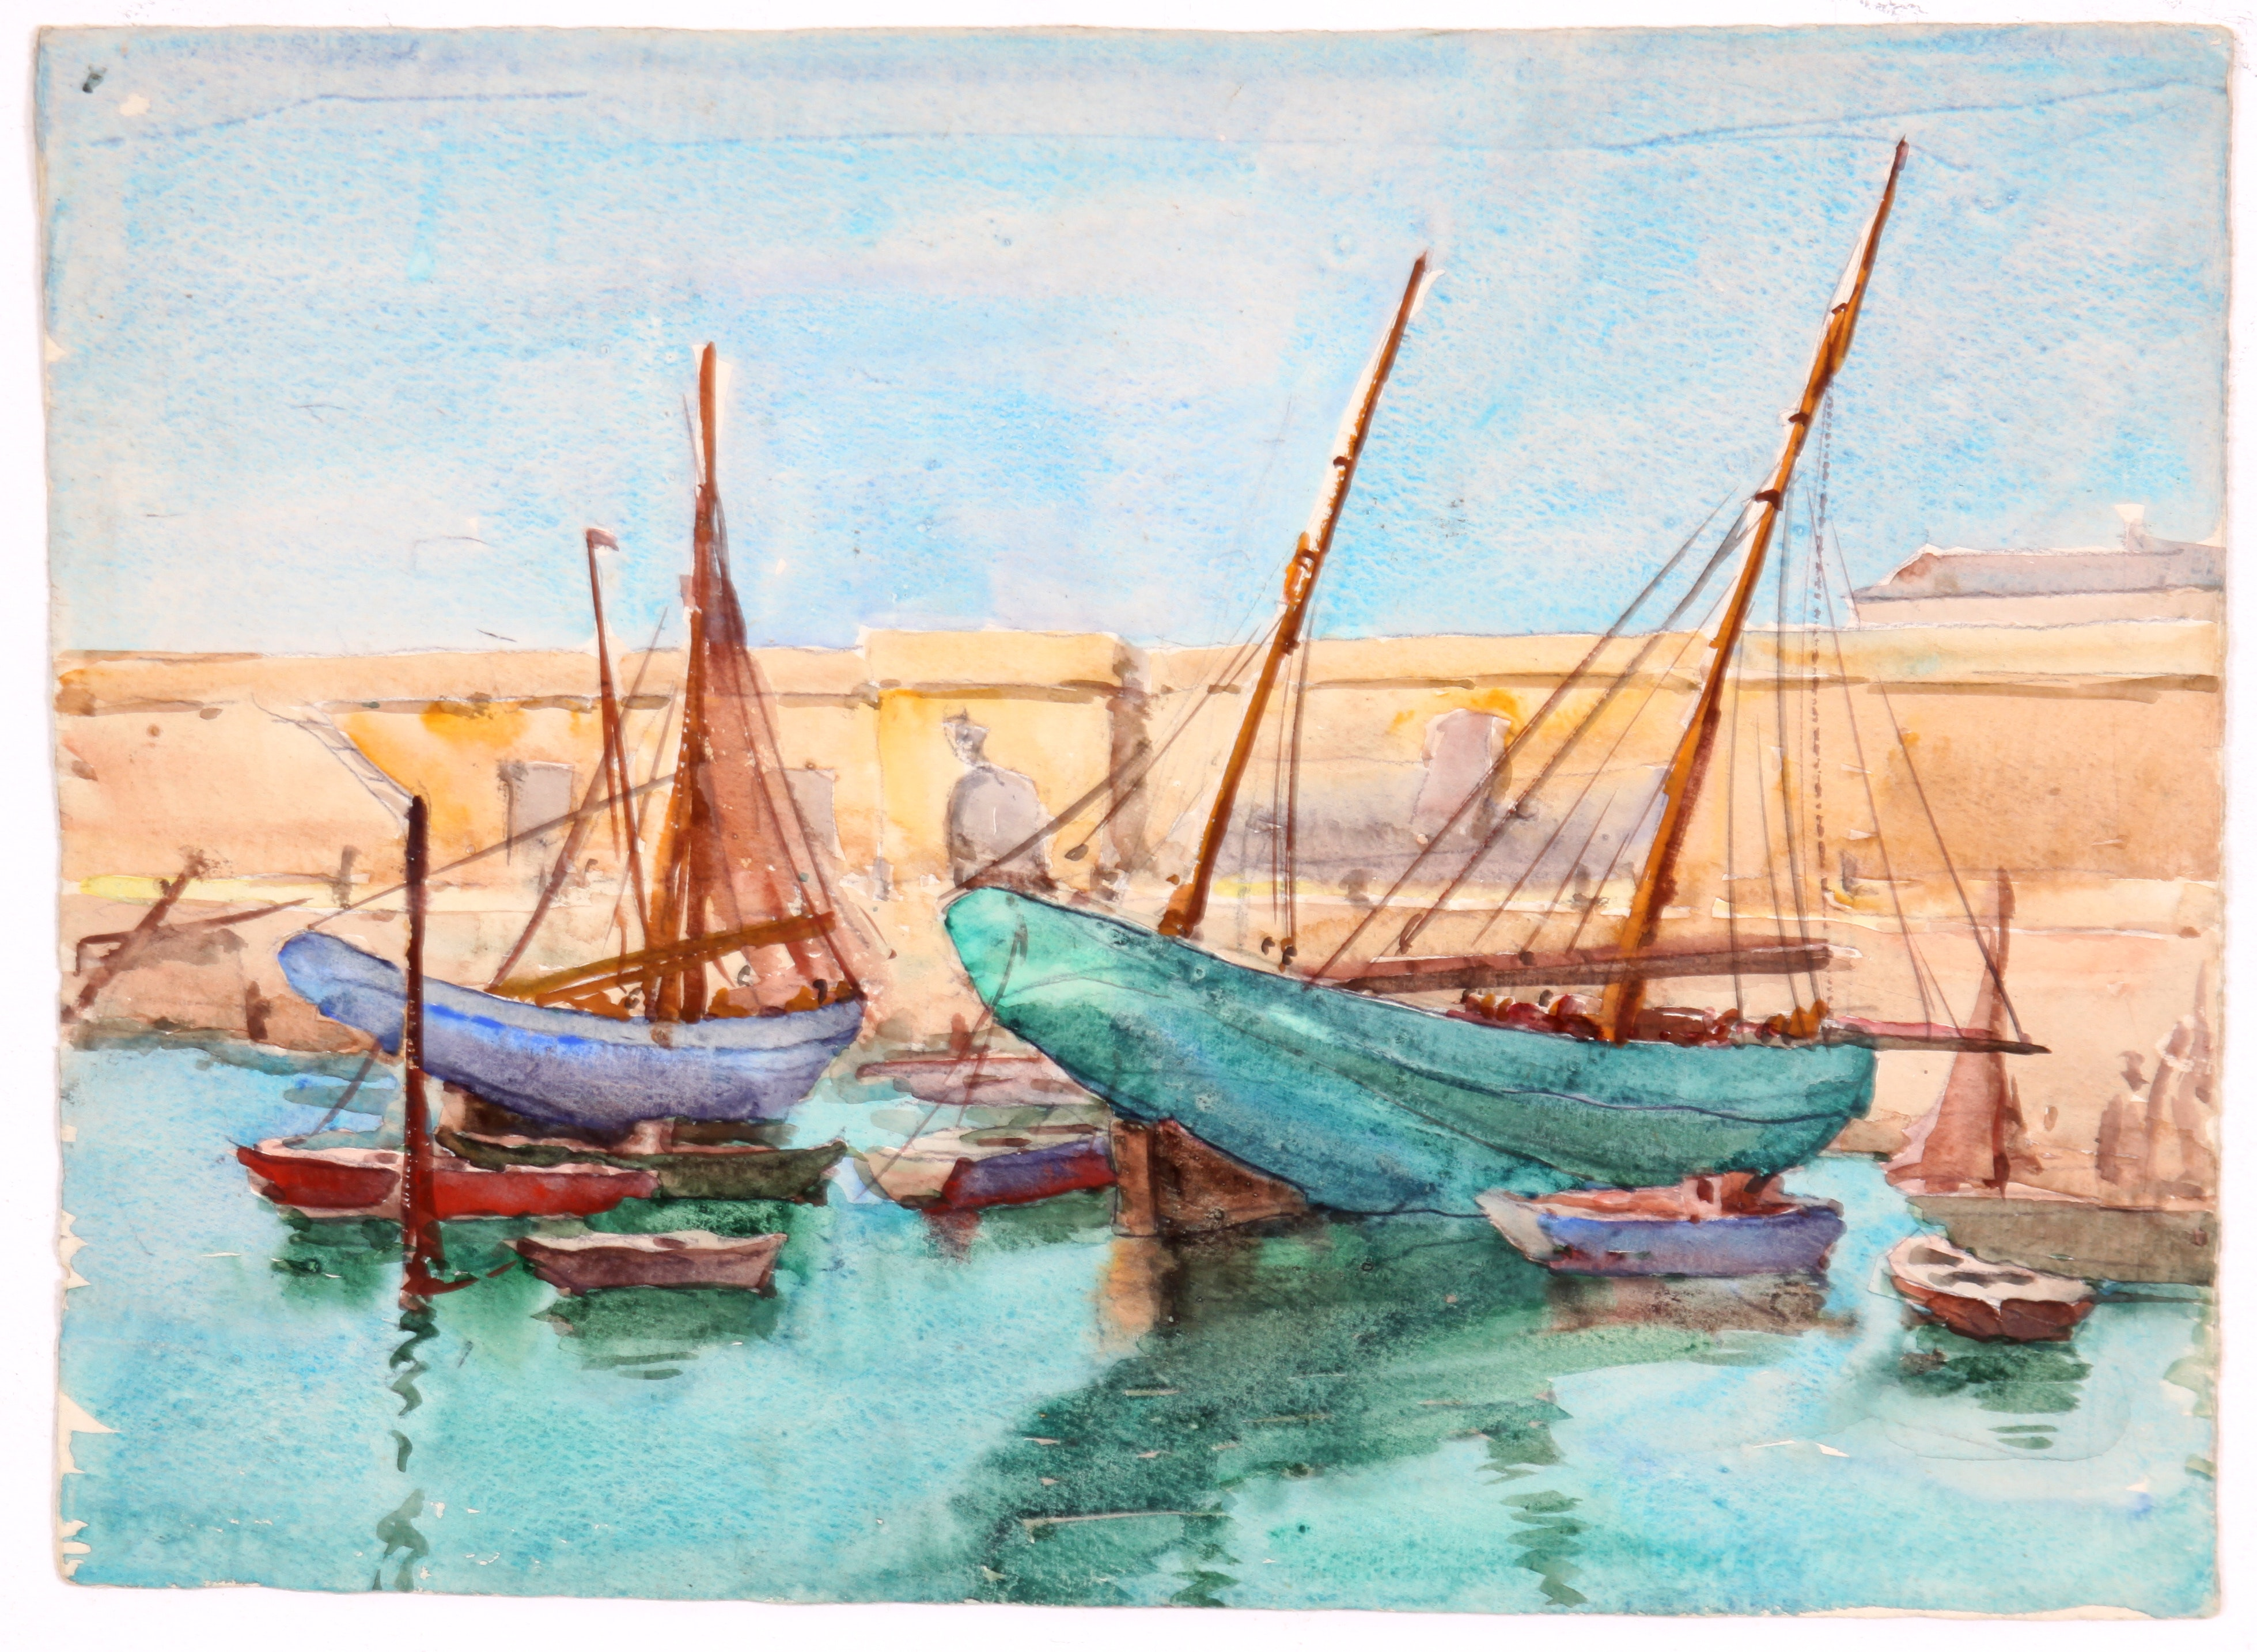 Original Double Sided Watercolor by Raoul Monory